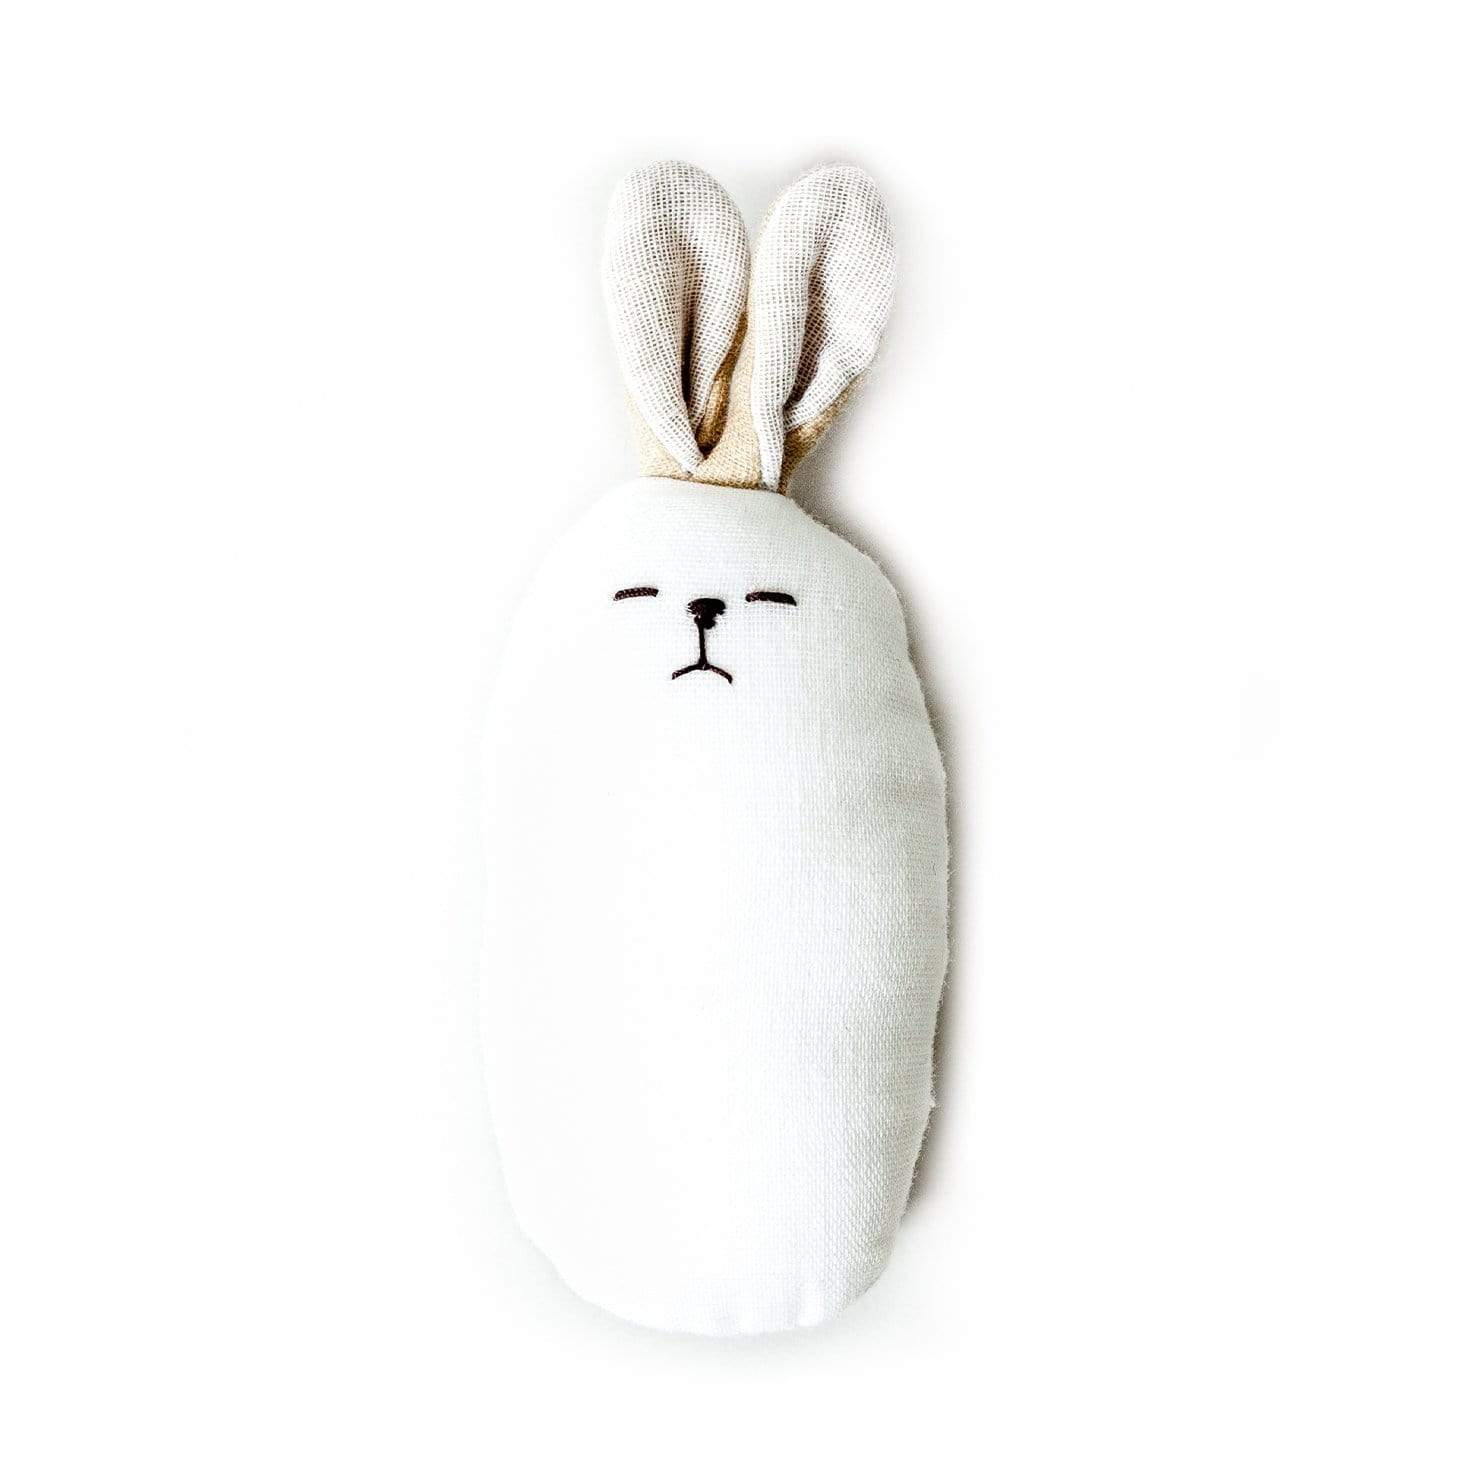 Daitou Shingu Plush Toy - Rabbit